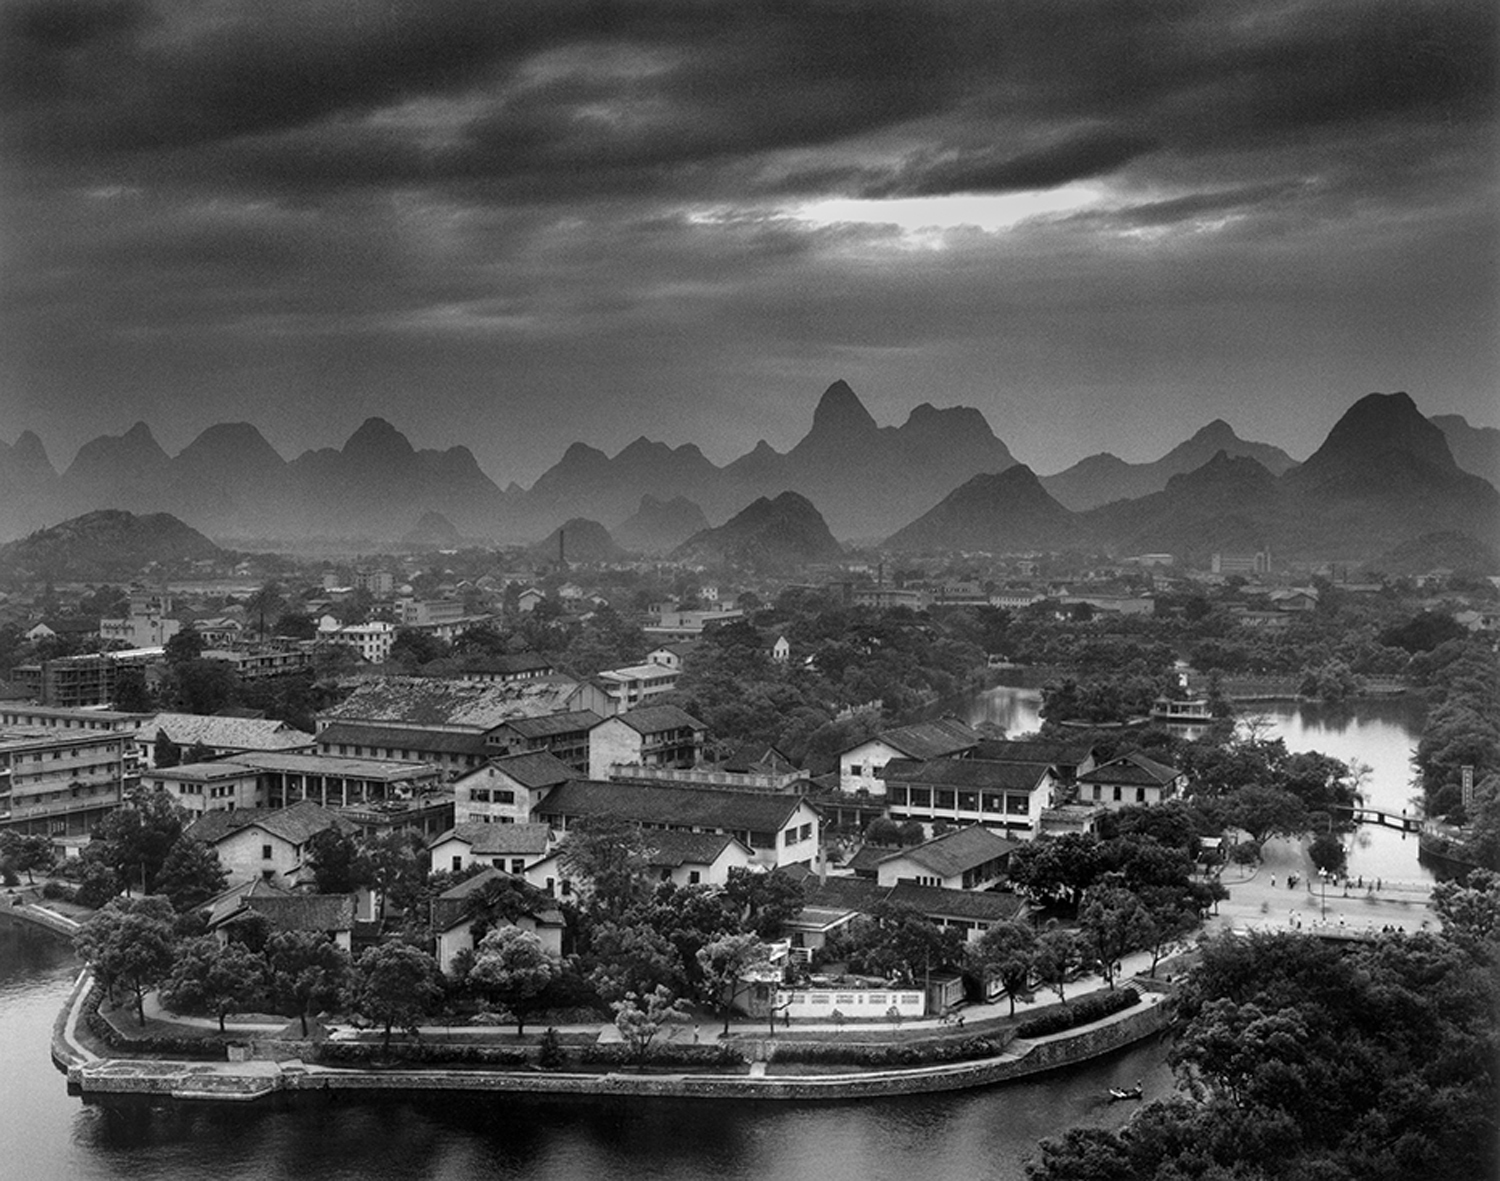 Skyline, Guilin, China